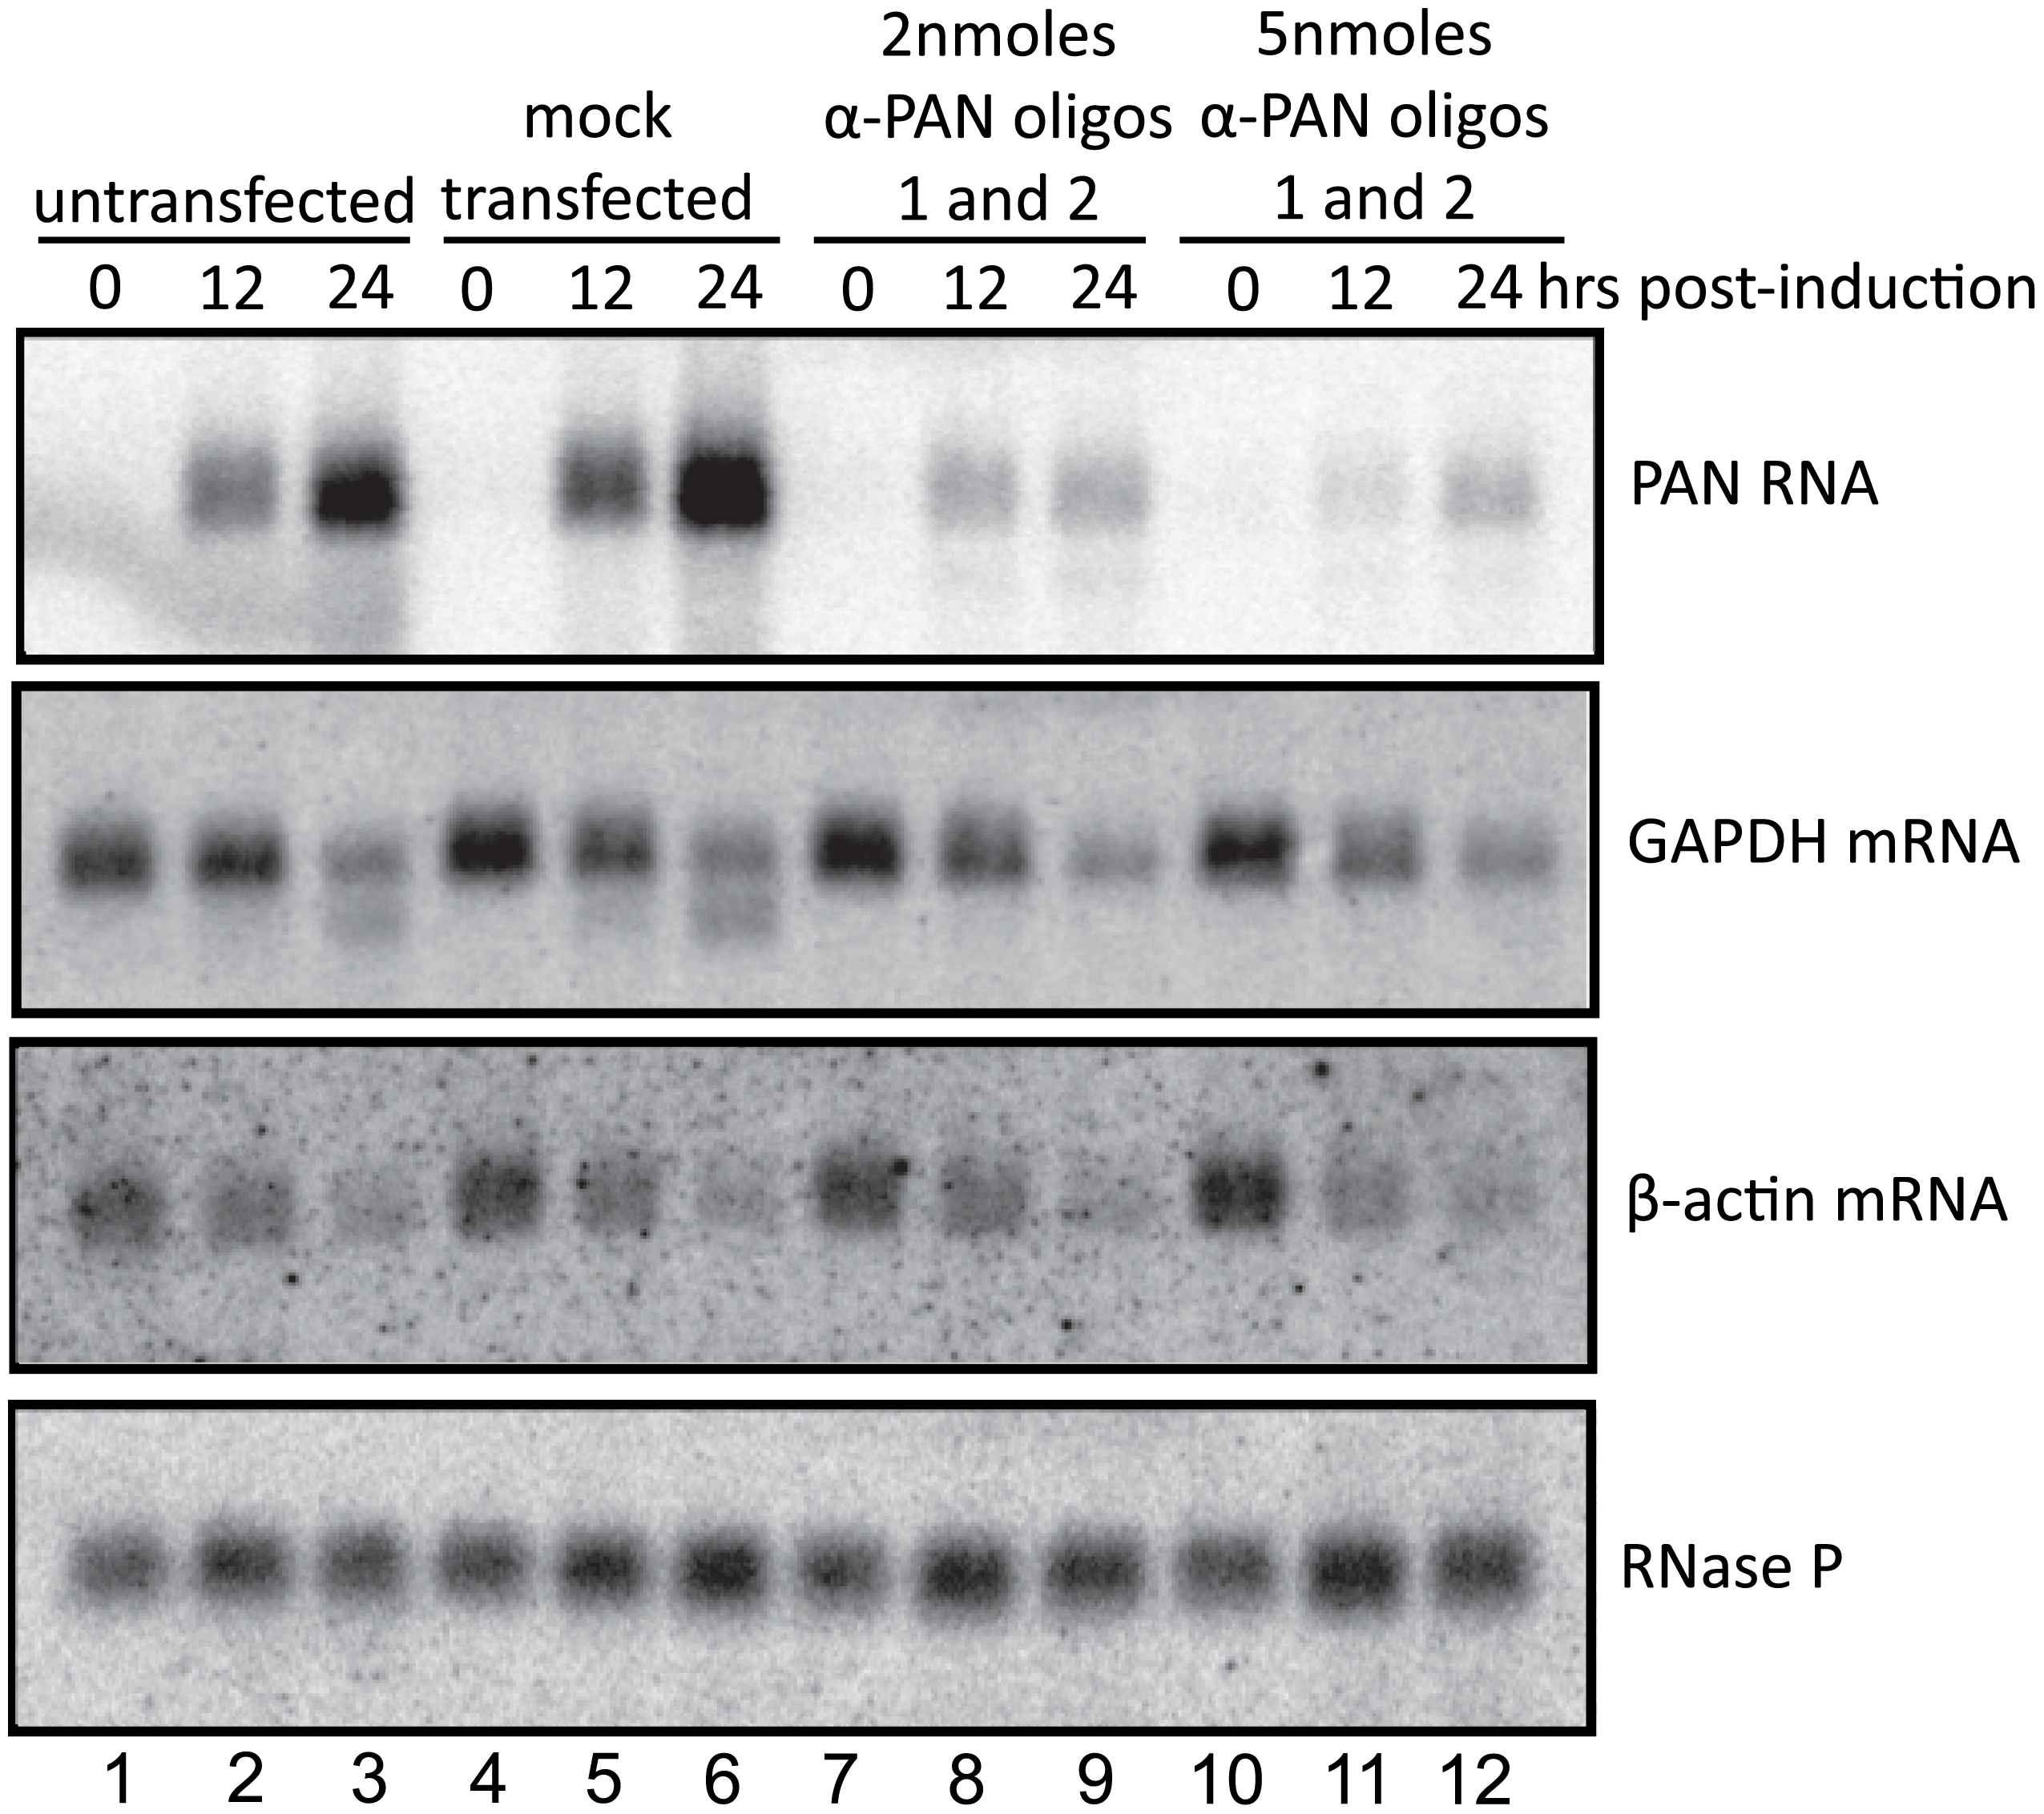 PAN RNA does not contribute to the host shutoff effect.